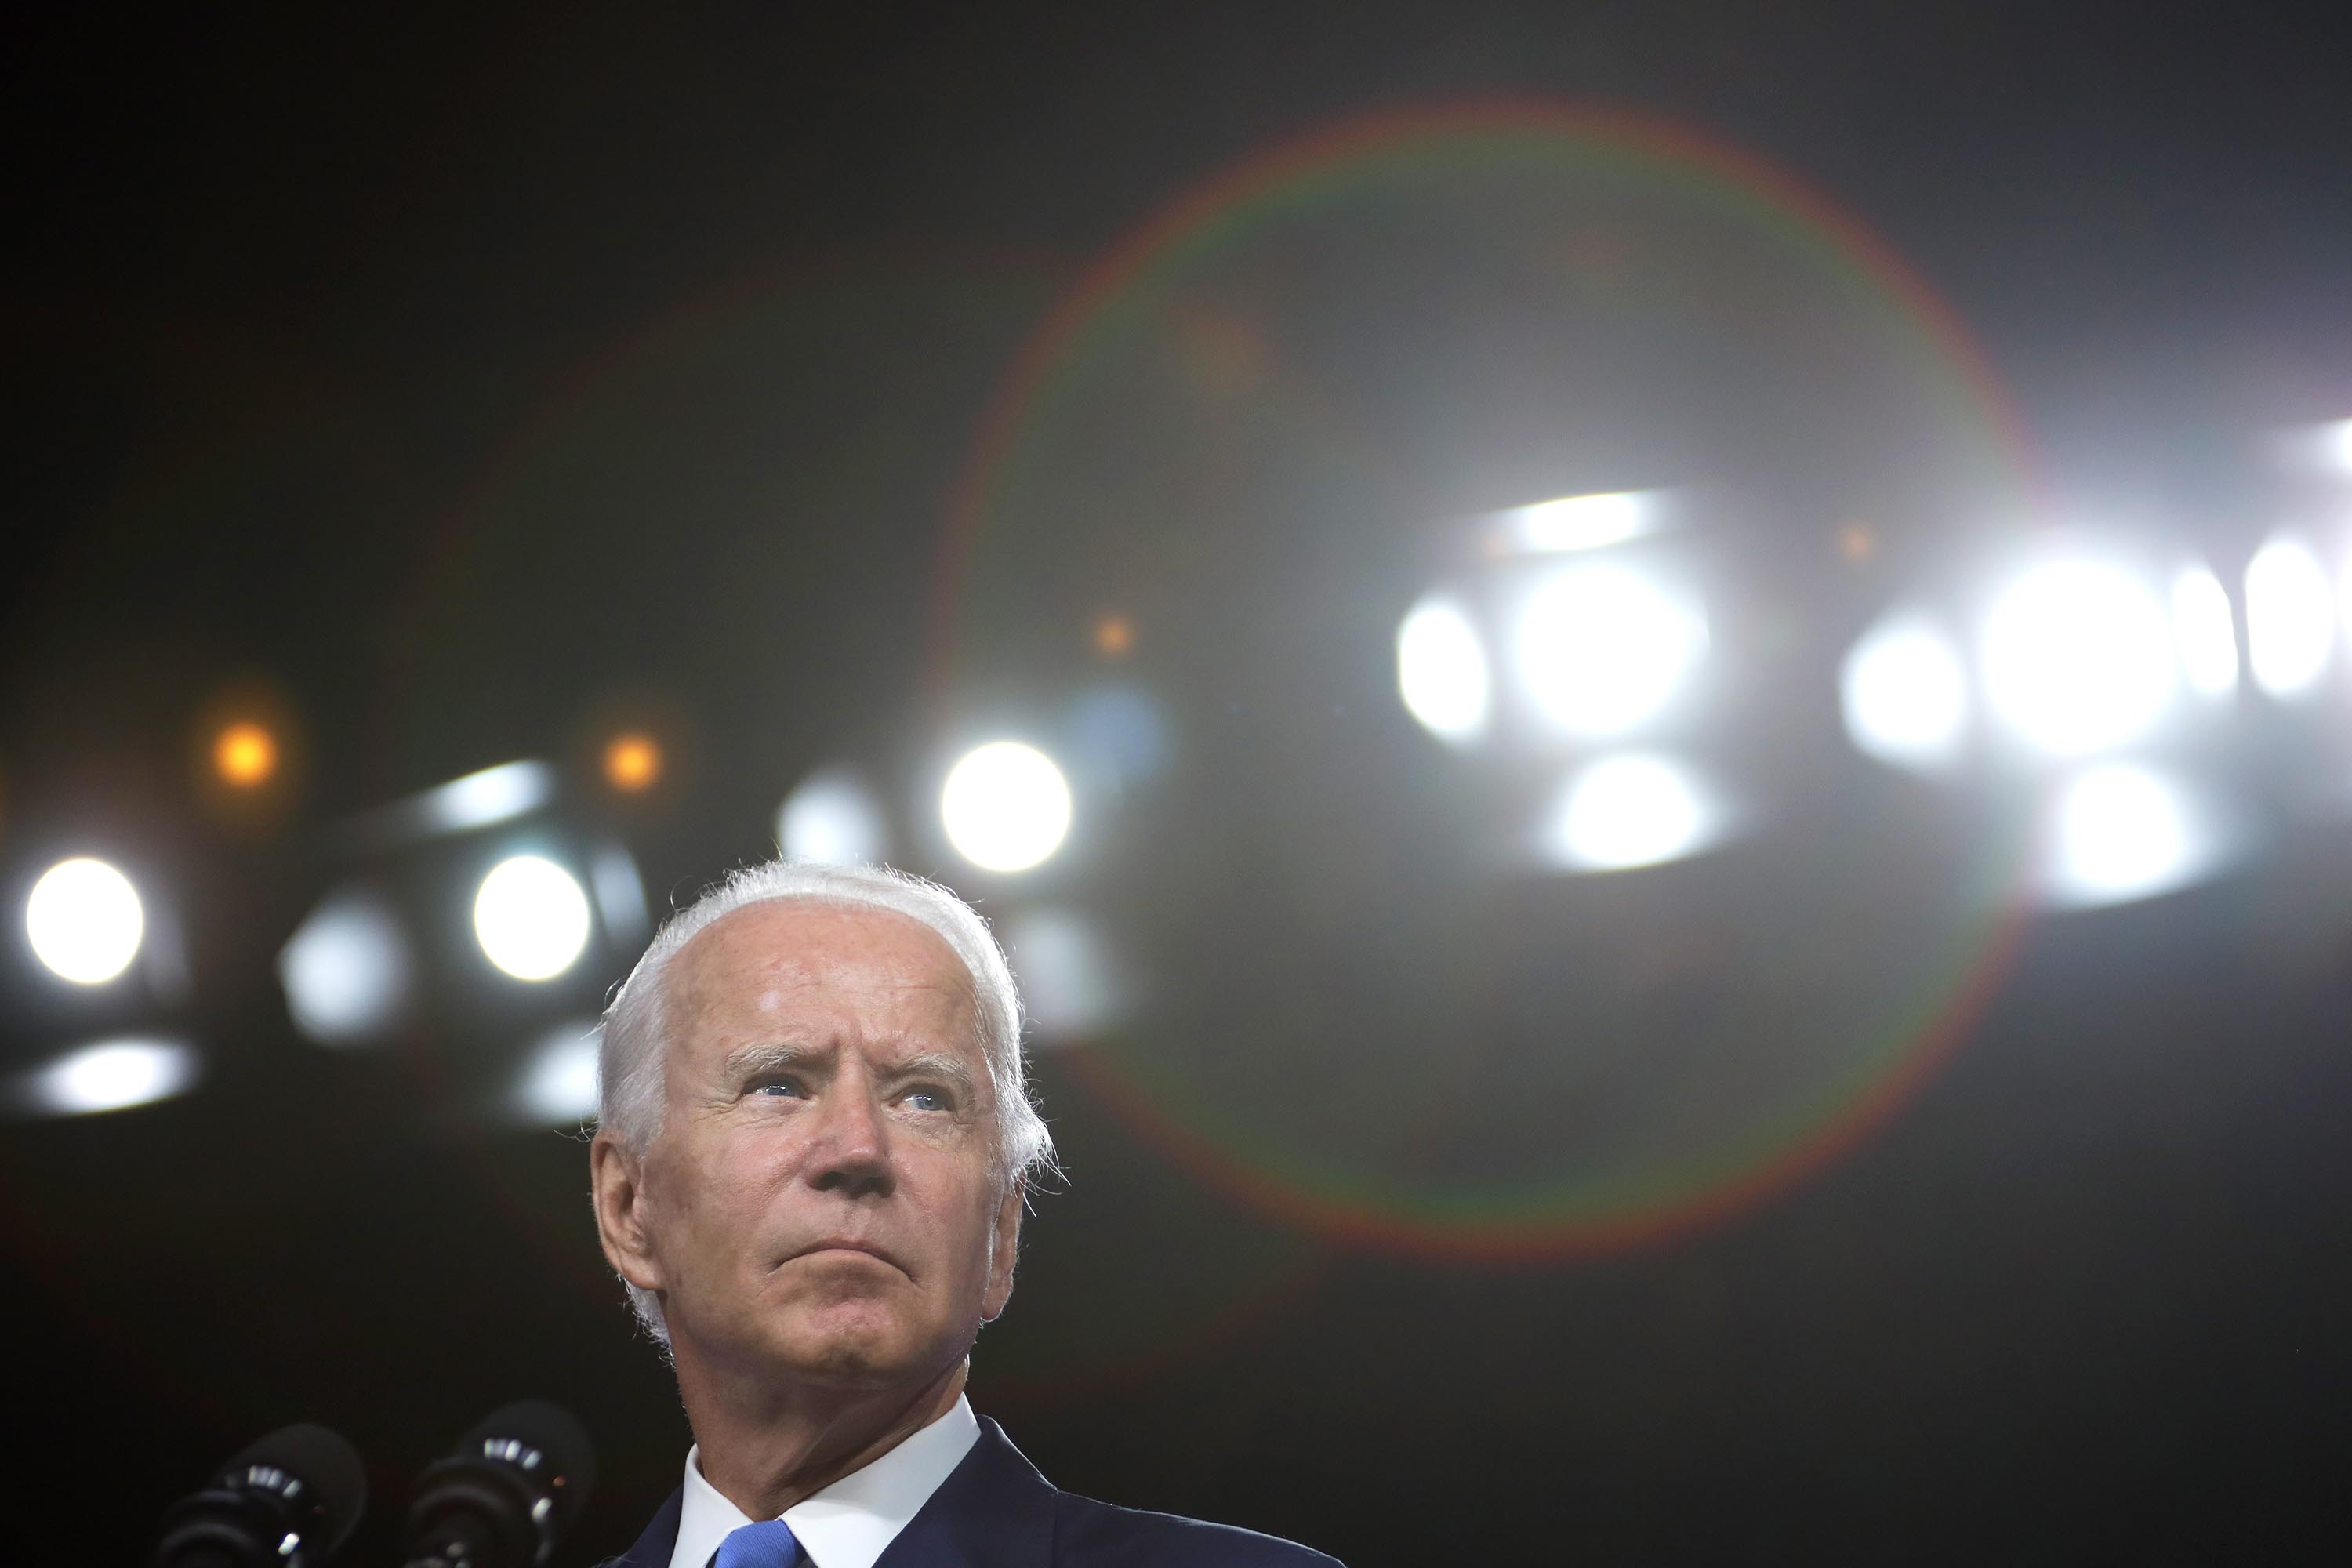 US authorities investigating if recently published emails are tied to Russian disinformation effort targeting Biden